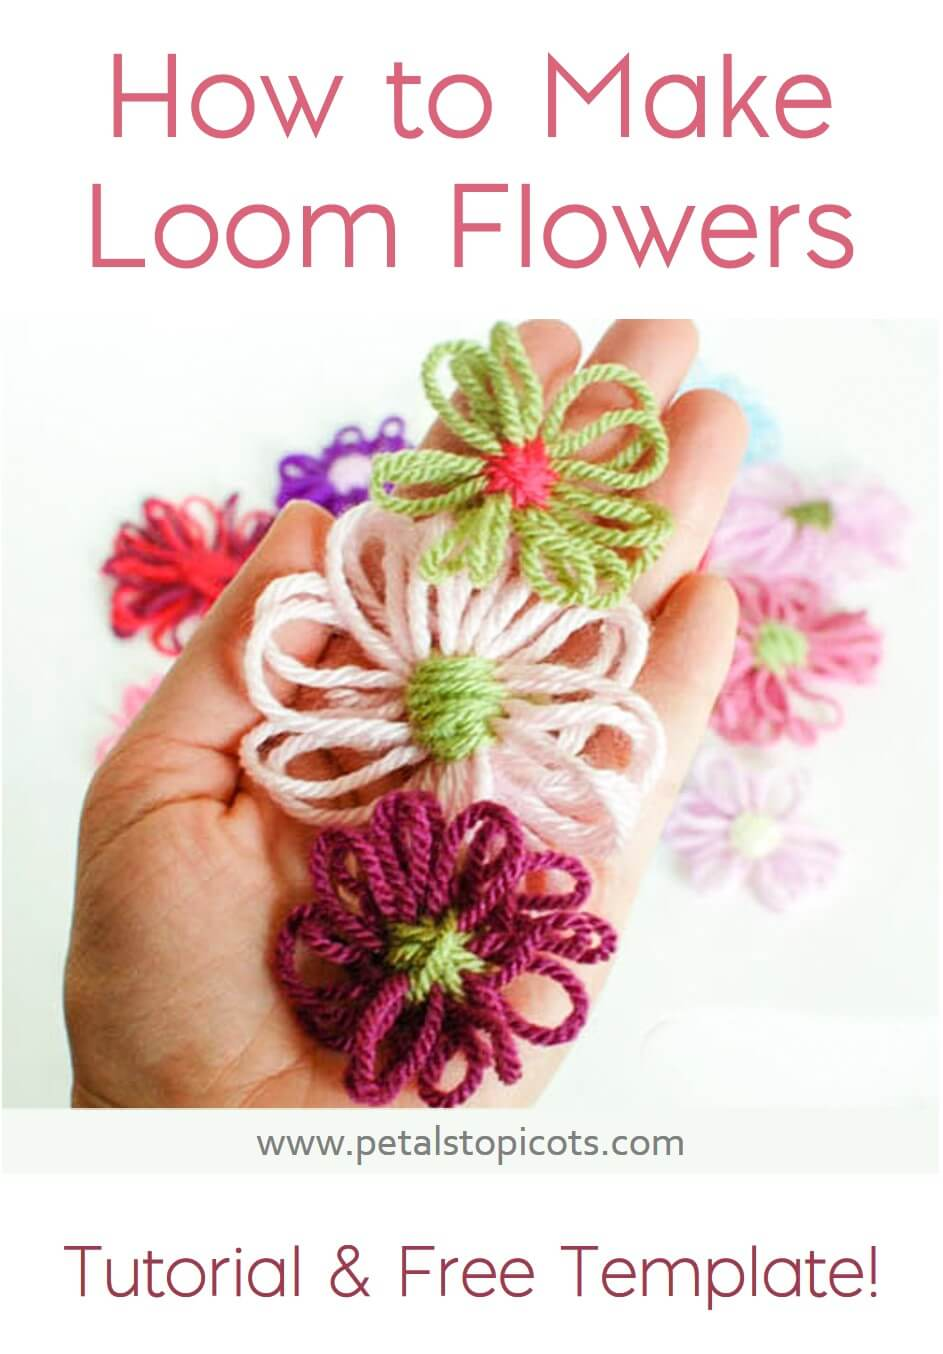 These pretty loom flowers are so quick and simple to whip up ... Download the free loom template and follow this